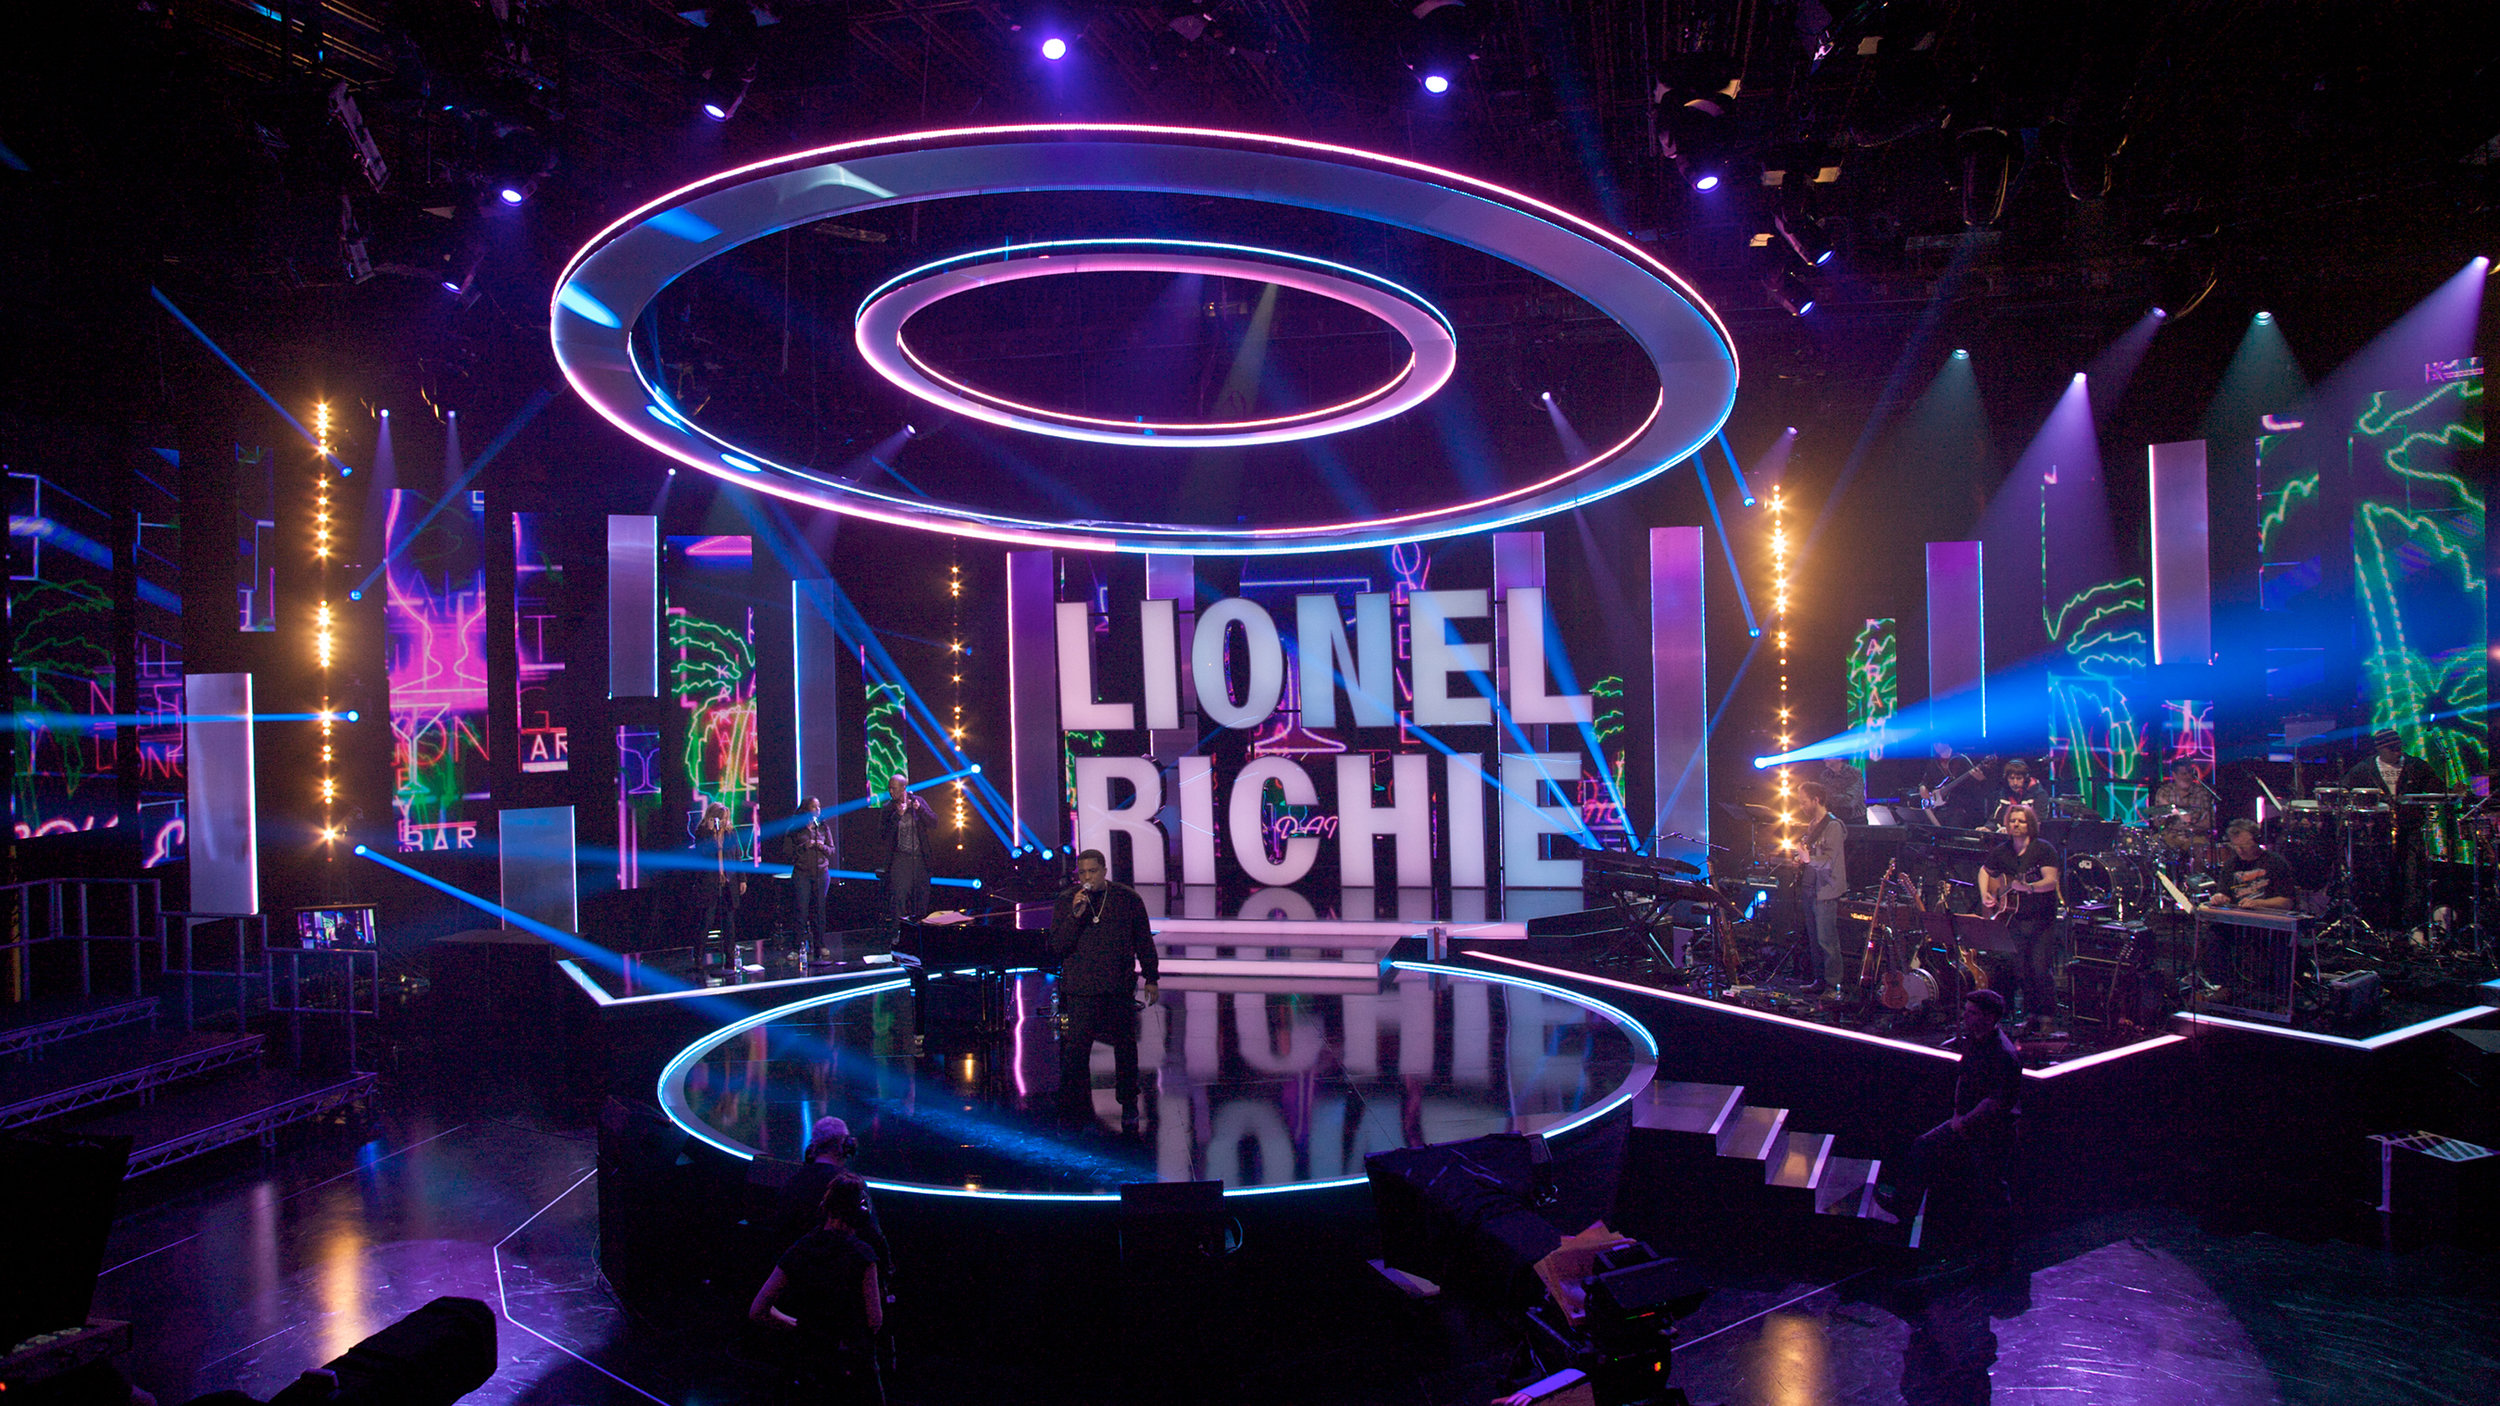 LIONEL RITCHIE MUSIC SPECIAL